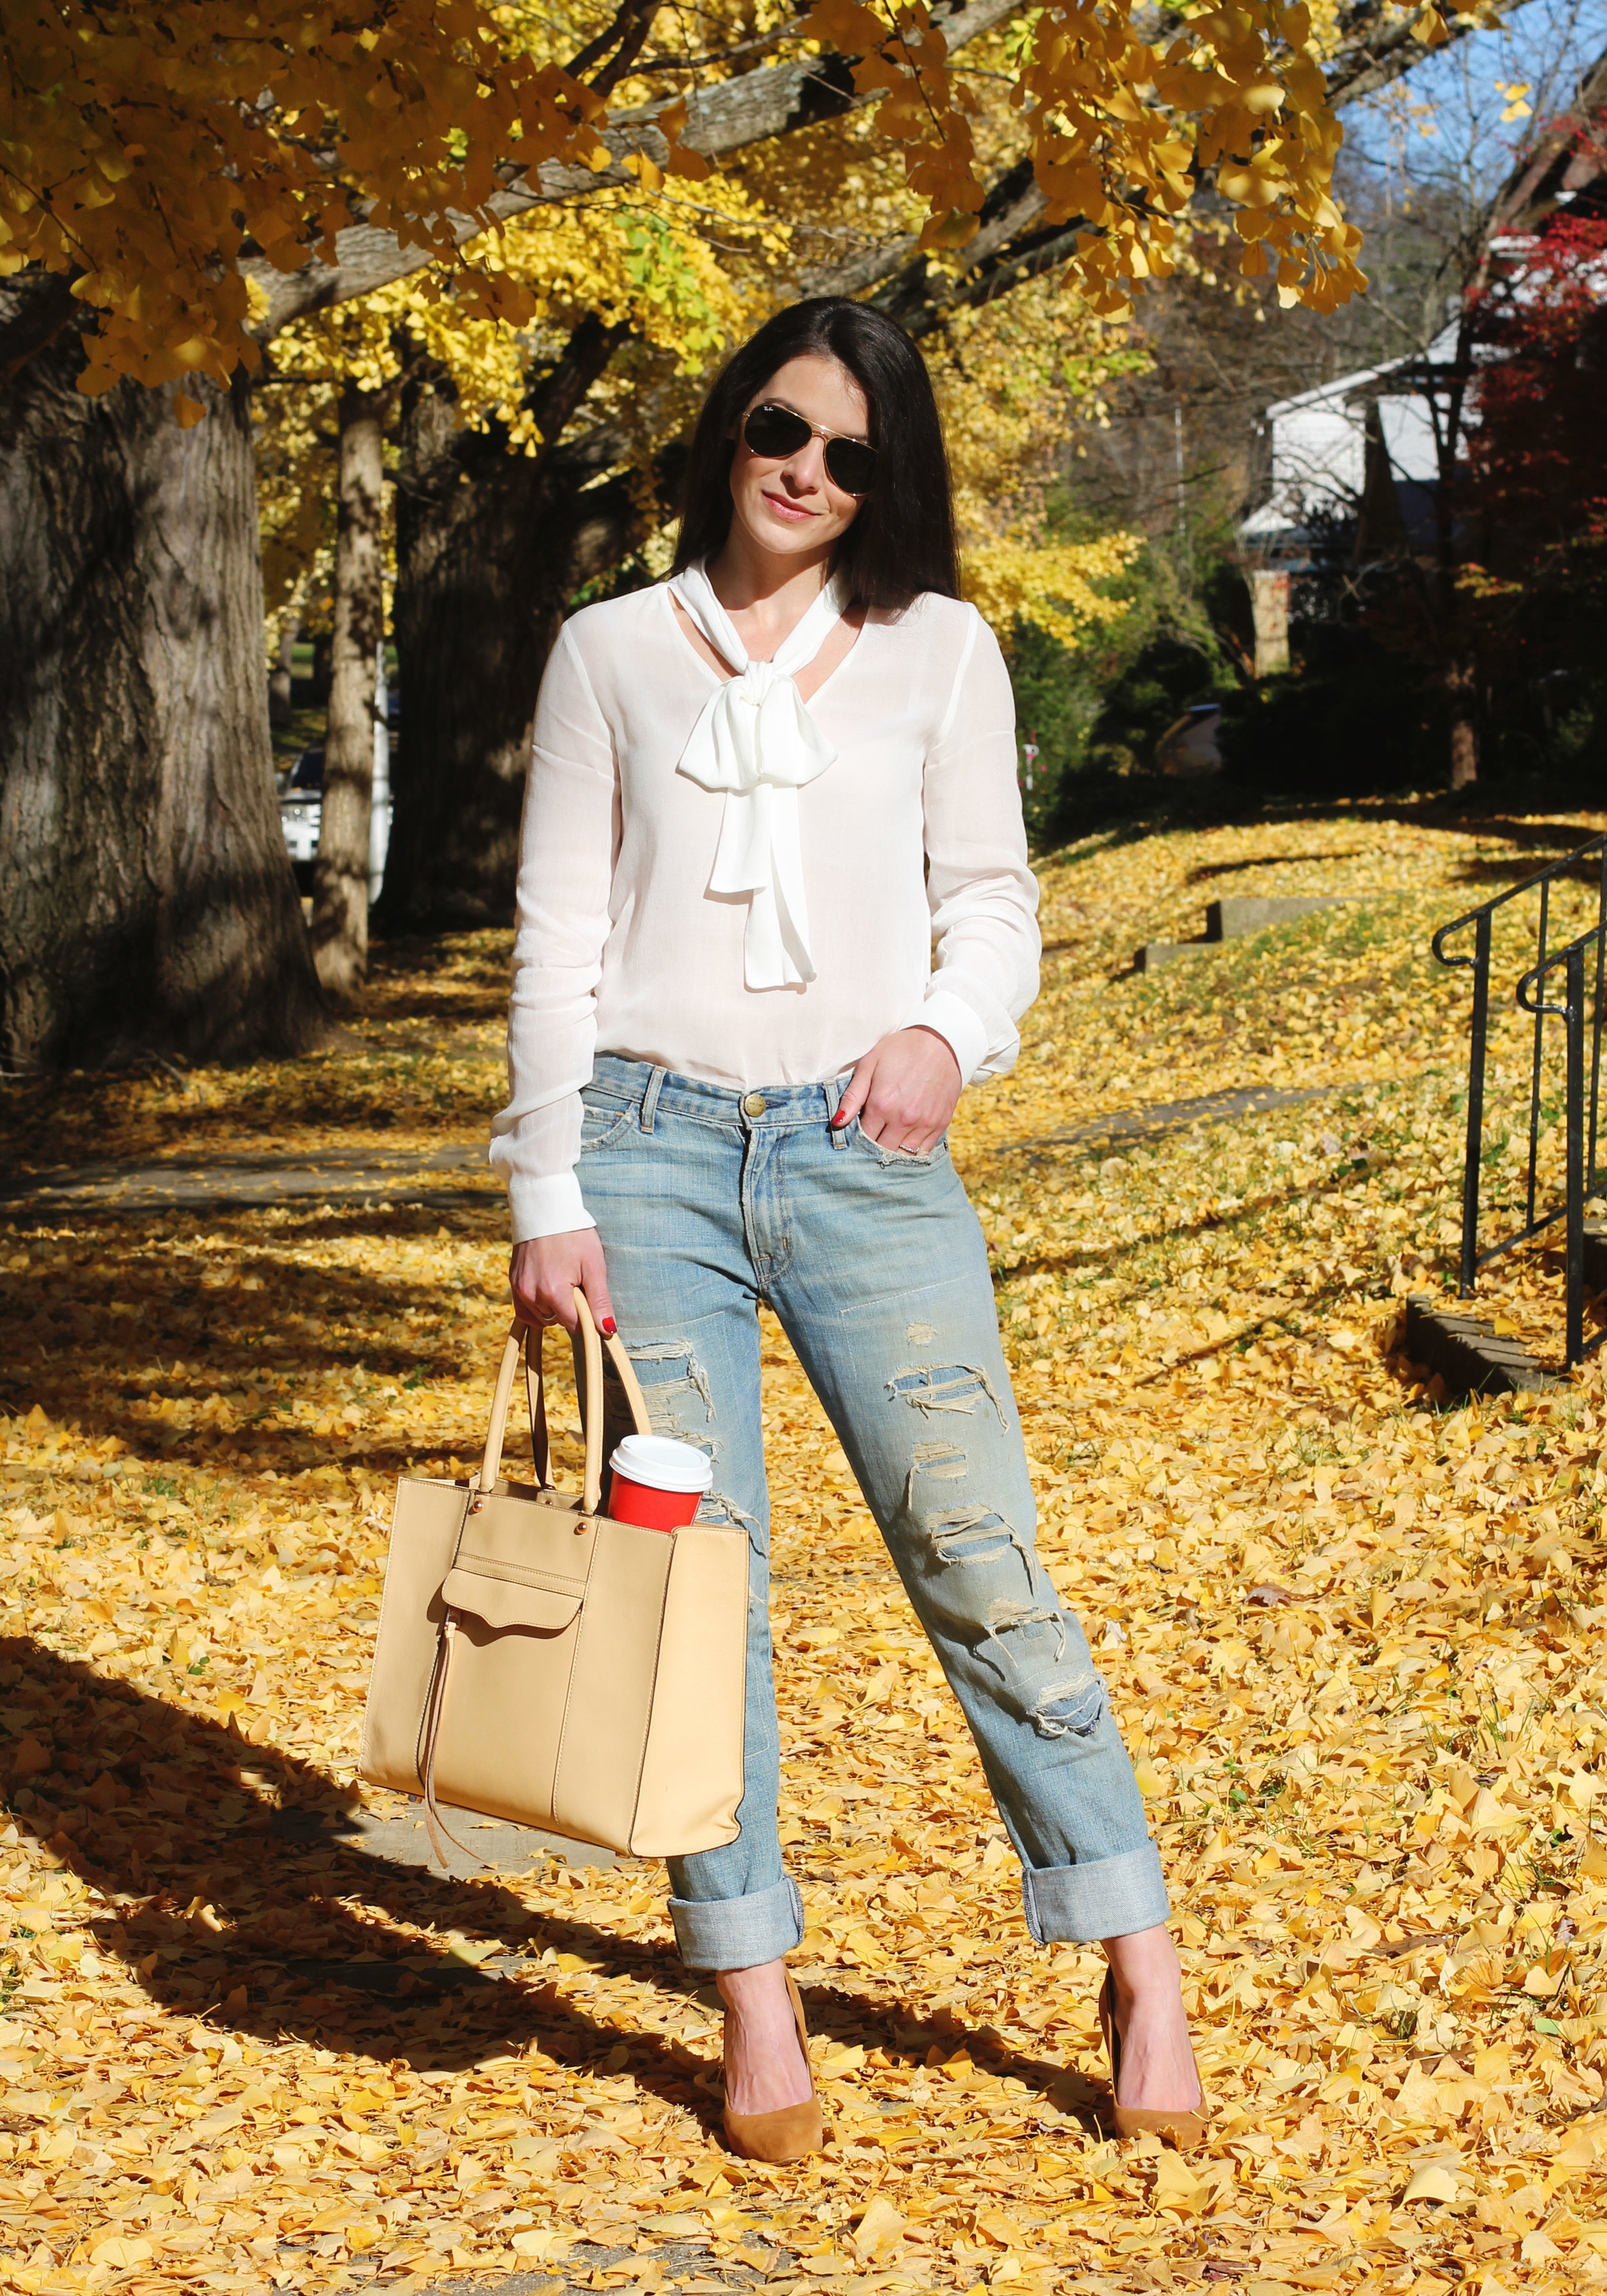 Fall Outfit, Thanksgiving Outfit, Current Elliott Boyfriend Jeans, Zara Bow Blouse, Tan Suede Pumps, Rebecca Minkoff Medium MAB Tote, Ombre Nail Polish